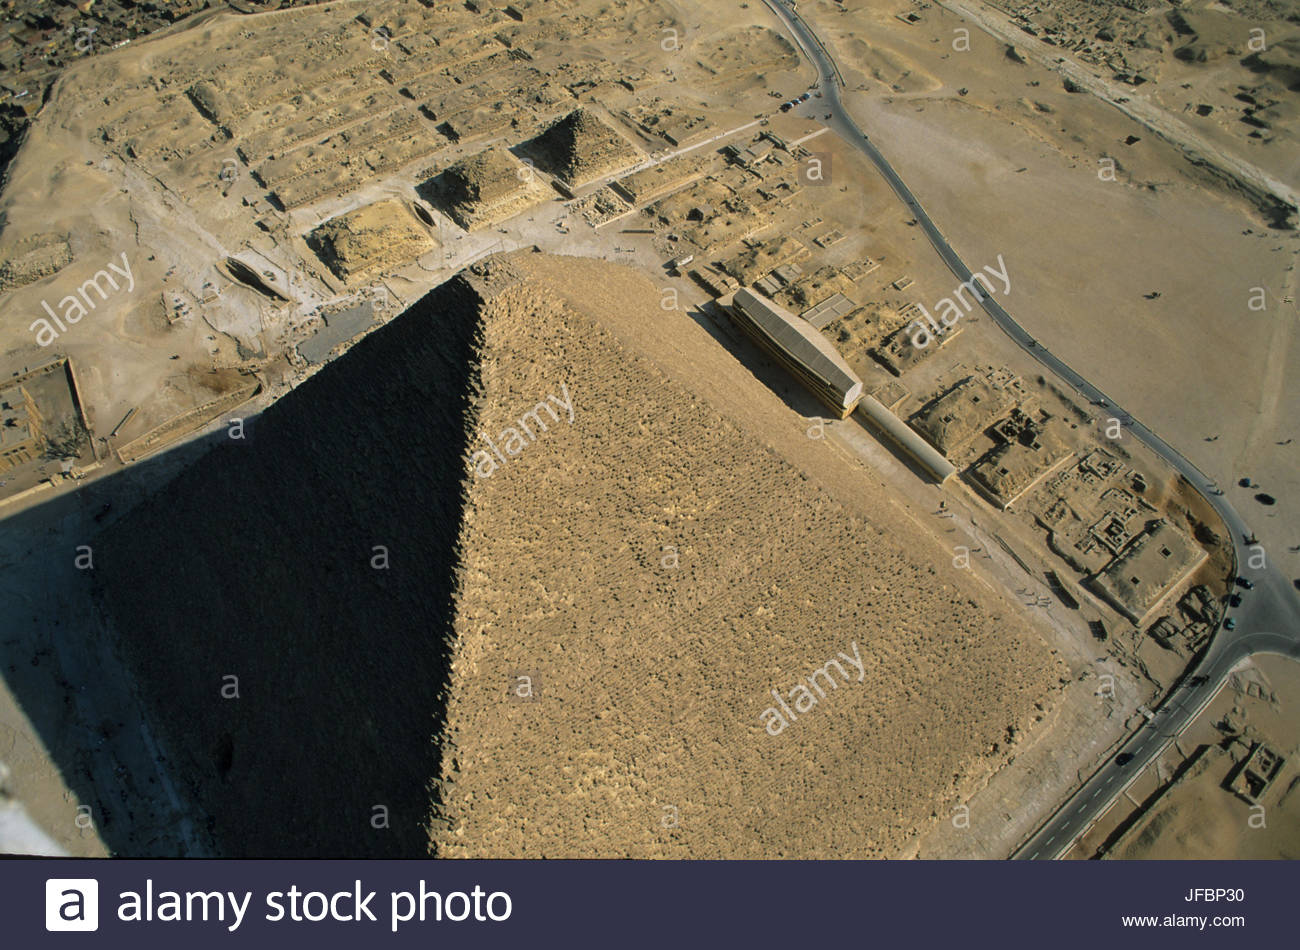 The Pyramid of Khufu. - Stock Image